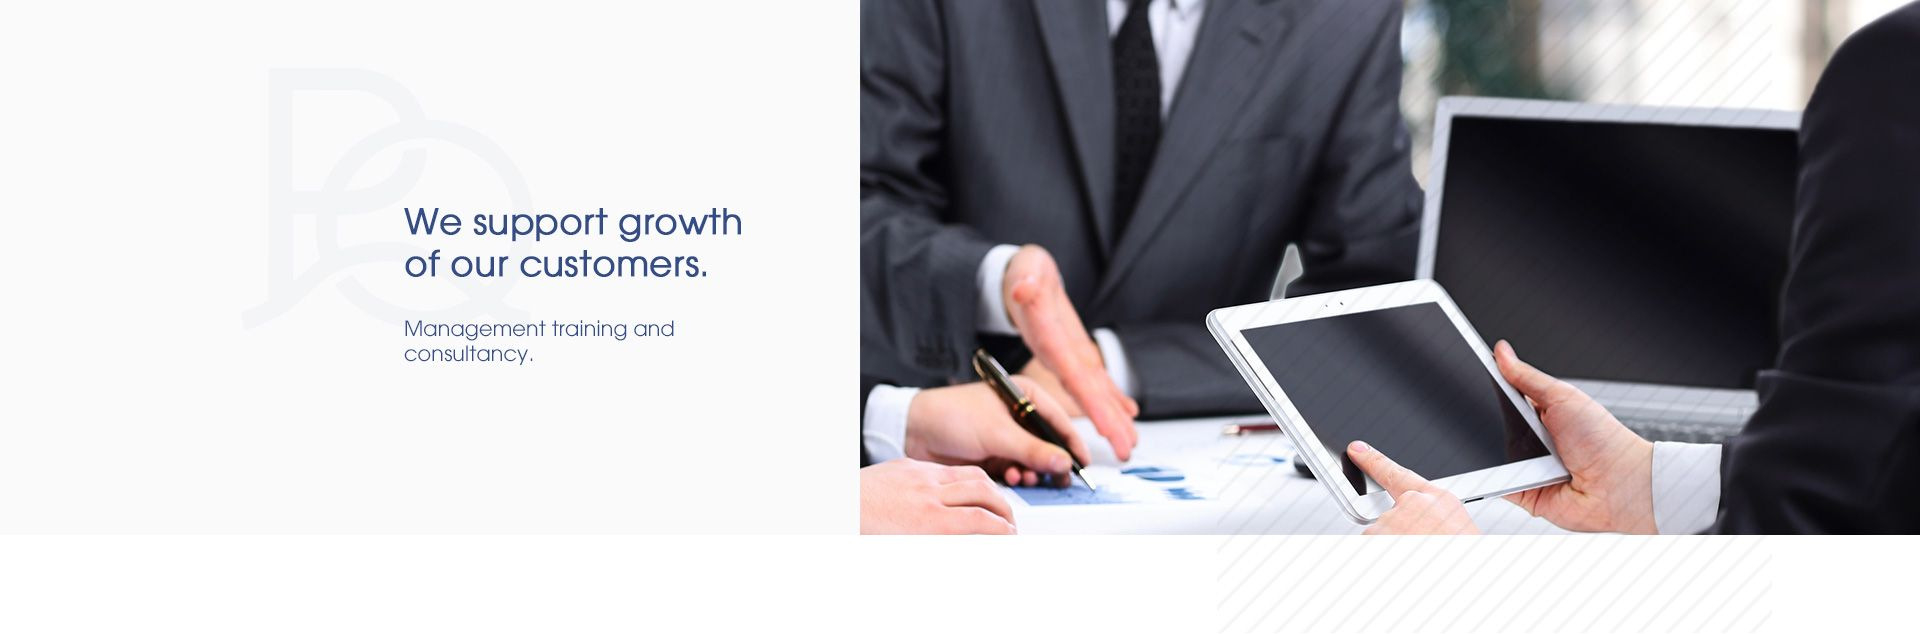 We support growth of our customers.